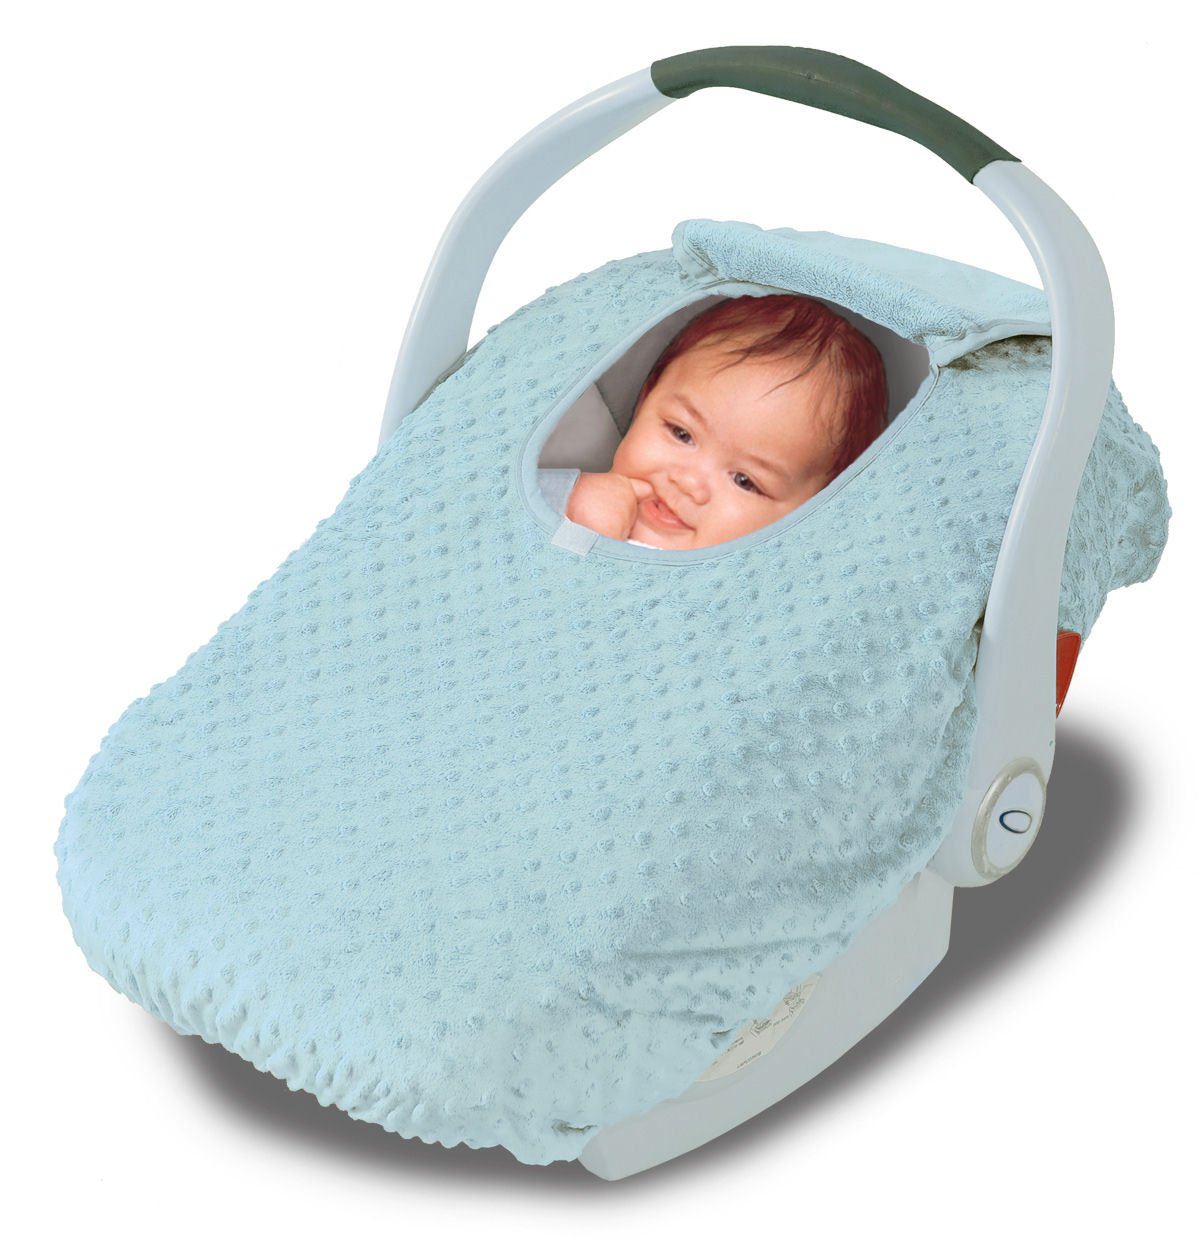 Car Seat Cover - Cover For Your Baby In Their Car Seat - Aqua